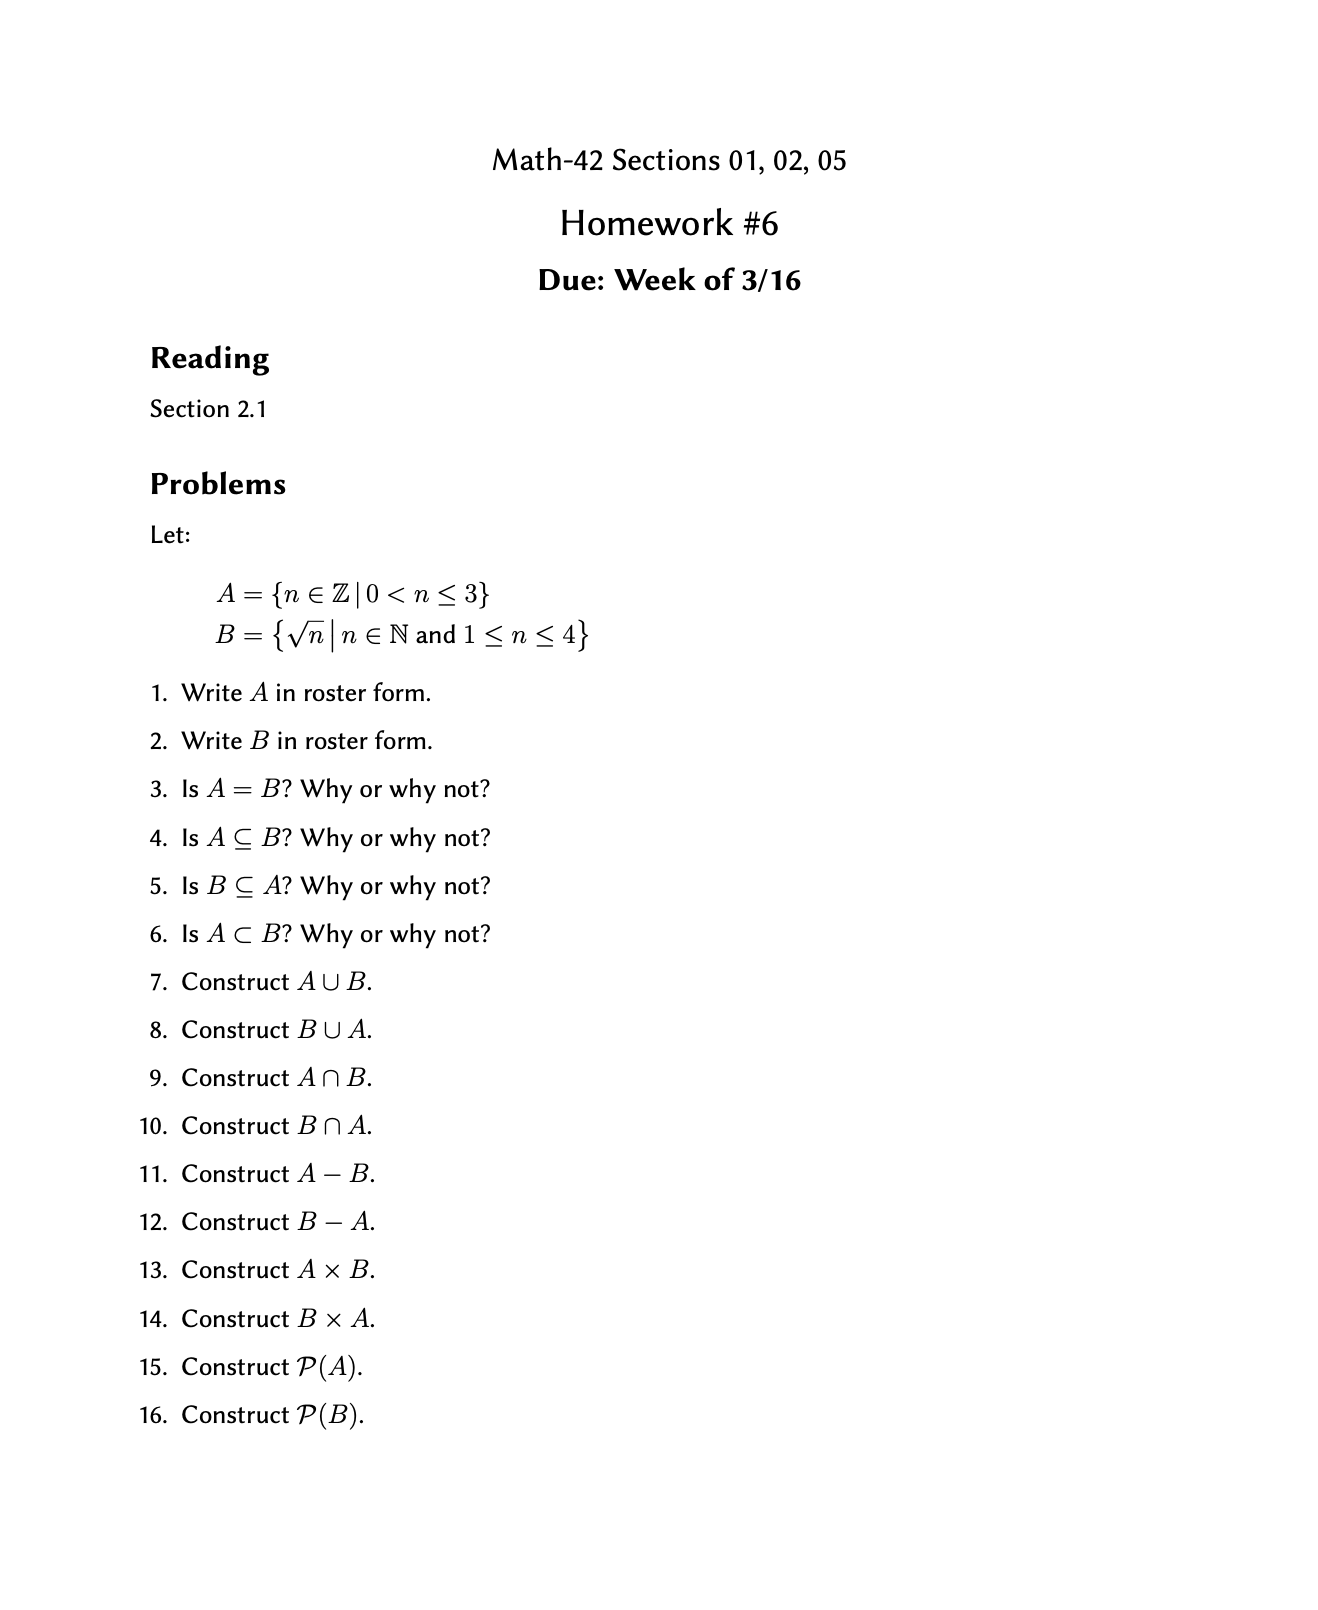 Math-42 Sections 01, 02, 05 Homework #6 Due: Week of 3/16 Reading Section 2.1 Problems Let: A = {n € Z|0< n< 3} {Vn|n€N and 1<n< 4} B = 1. Write A in roster form. 2. Write B in roster form. 3. Is A = B? Why or why not? 4. Is A C B? Why or why not? 5. Is B C A? Why or why not? 6. Is A C B? Why or why not? 7. Construct AUB. 8. Construct BU A. 9. Construct AN B. 10. Construct Bn A. 11. Construct A – B. 12. Construct B – A. 13. Construct A x B. 14. Construct B × A. 15. Construct P(A). 16. Construct P(B).